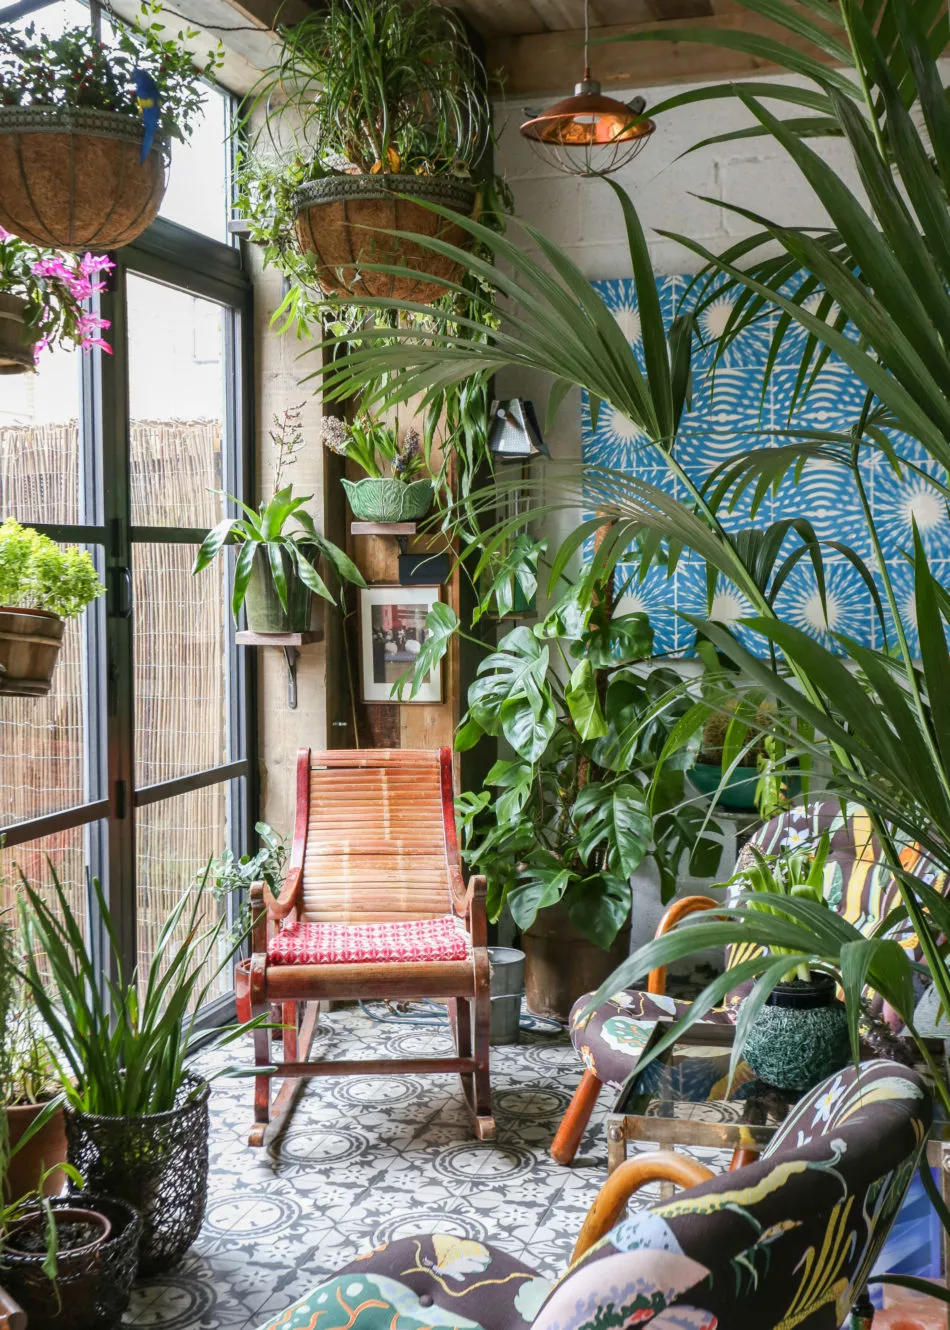 Chef Mark Hix's London flat is an eclectic mix of the old and new is part of Interior design plants, Botanical interior, Trending decor, Garden room, Room with plants, Garden living - British chef and restaurateur Mark Hix's suave Bermondsey flat in southeast London is filled with plants, antiques, reclaimed items, junkyard finds, and artwork—a collector's paradise, one might say